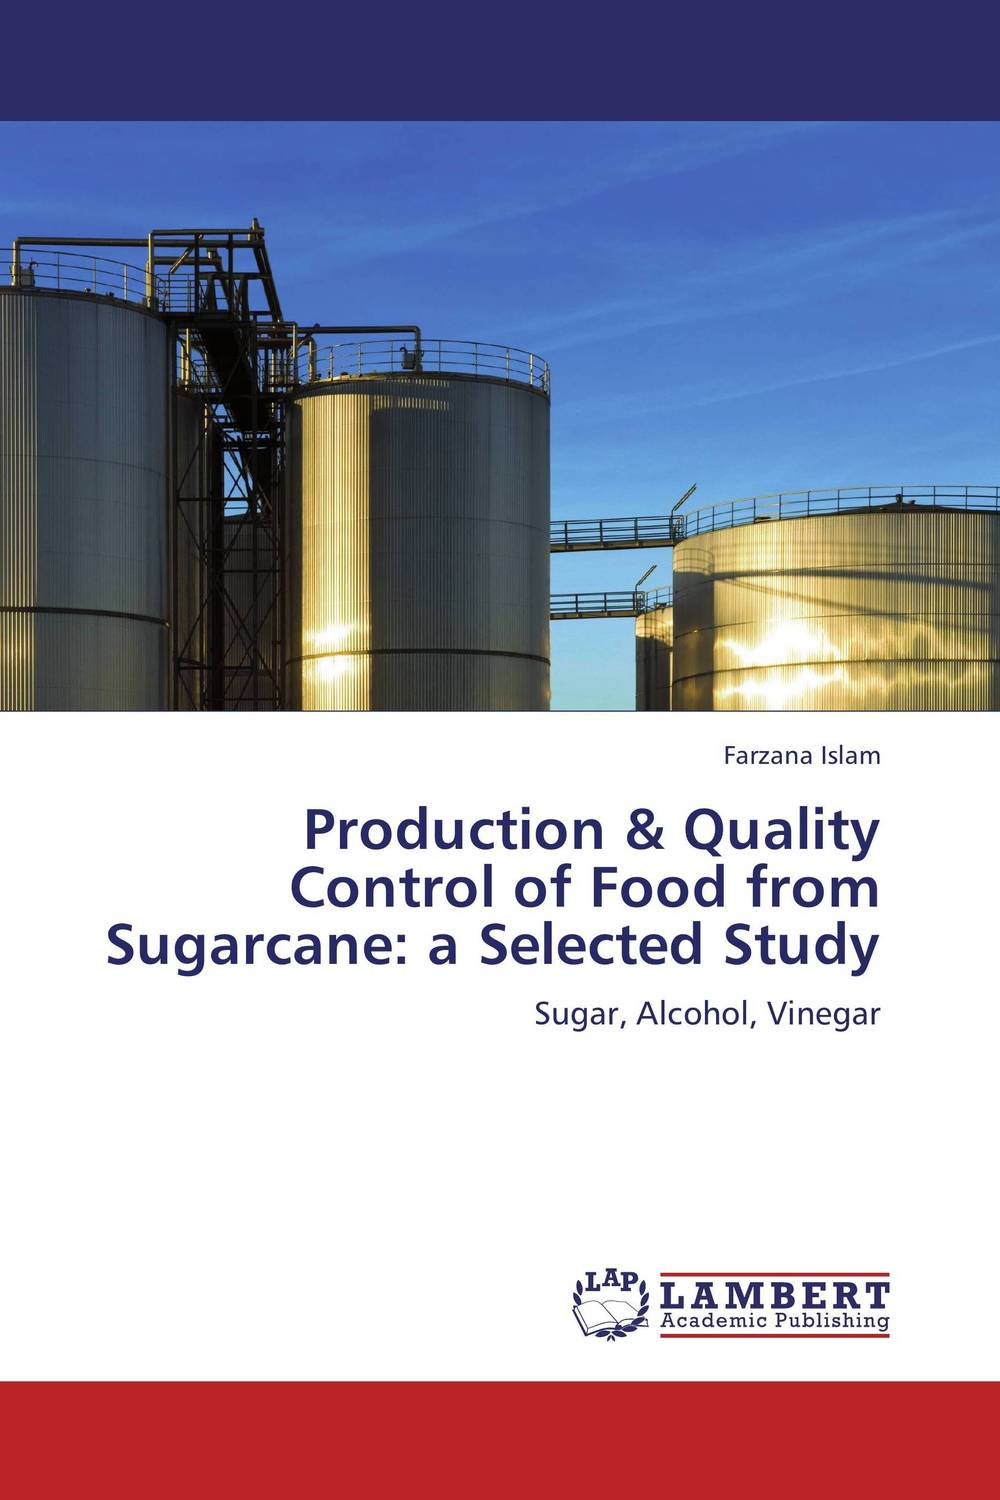 Production & Quality Control of Food from Sugarcane: a Selected Study